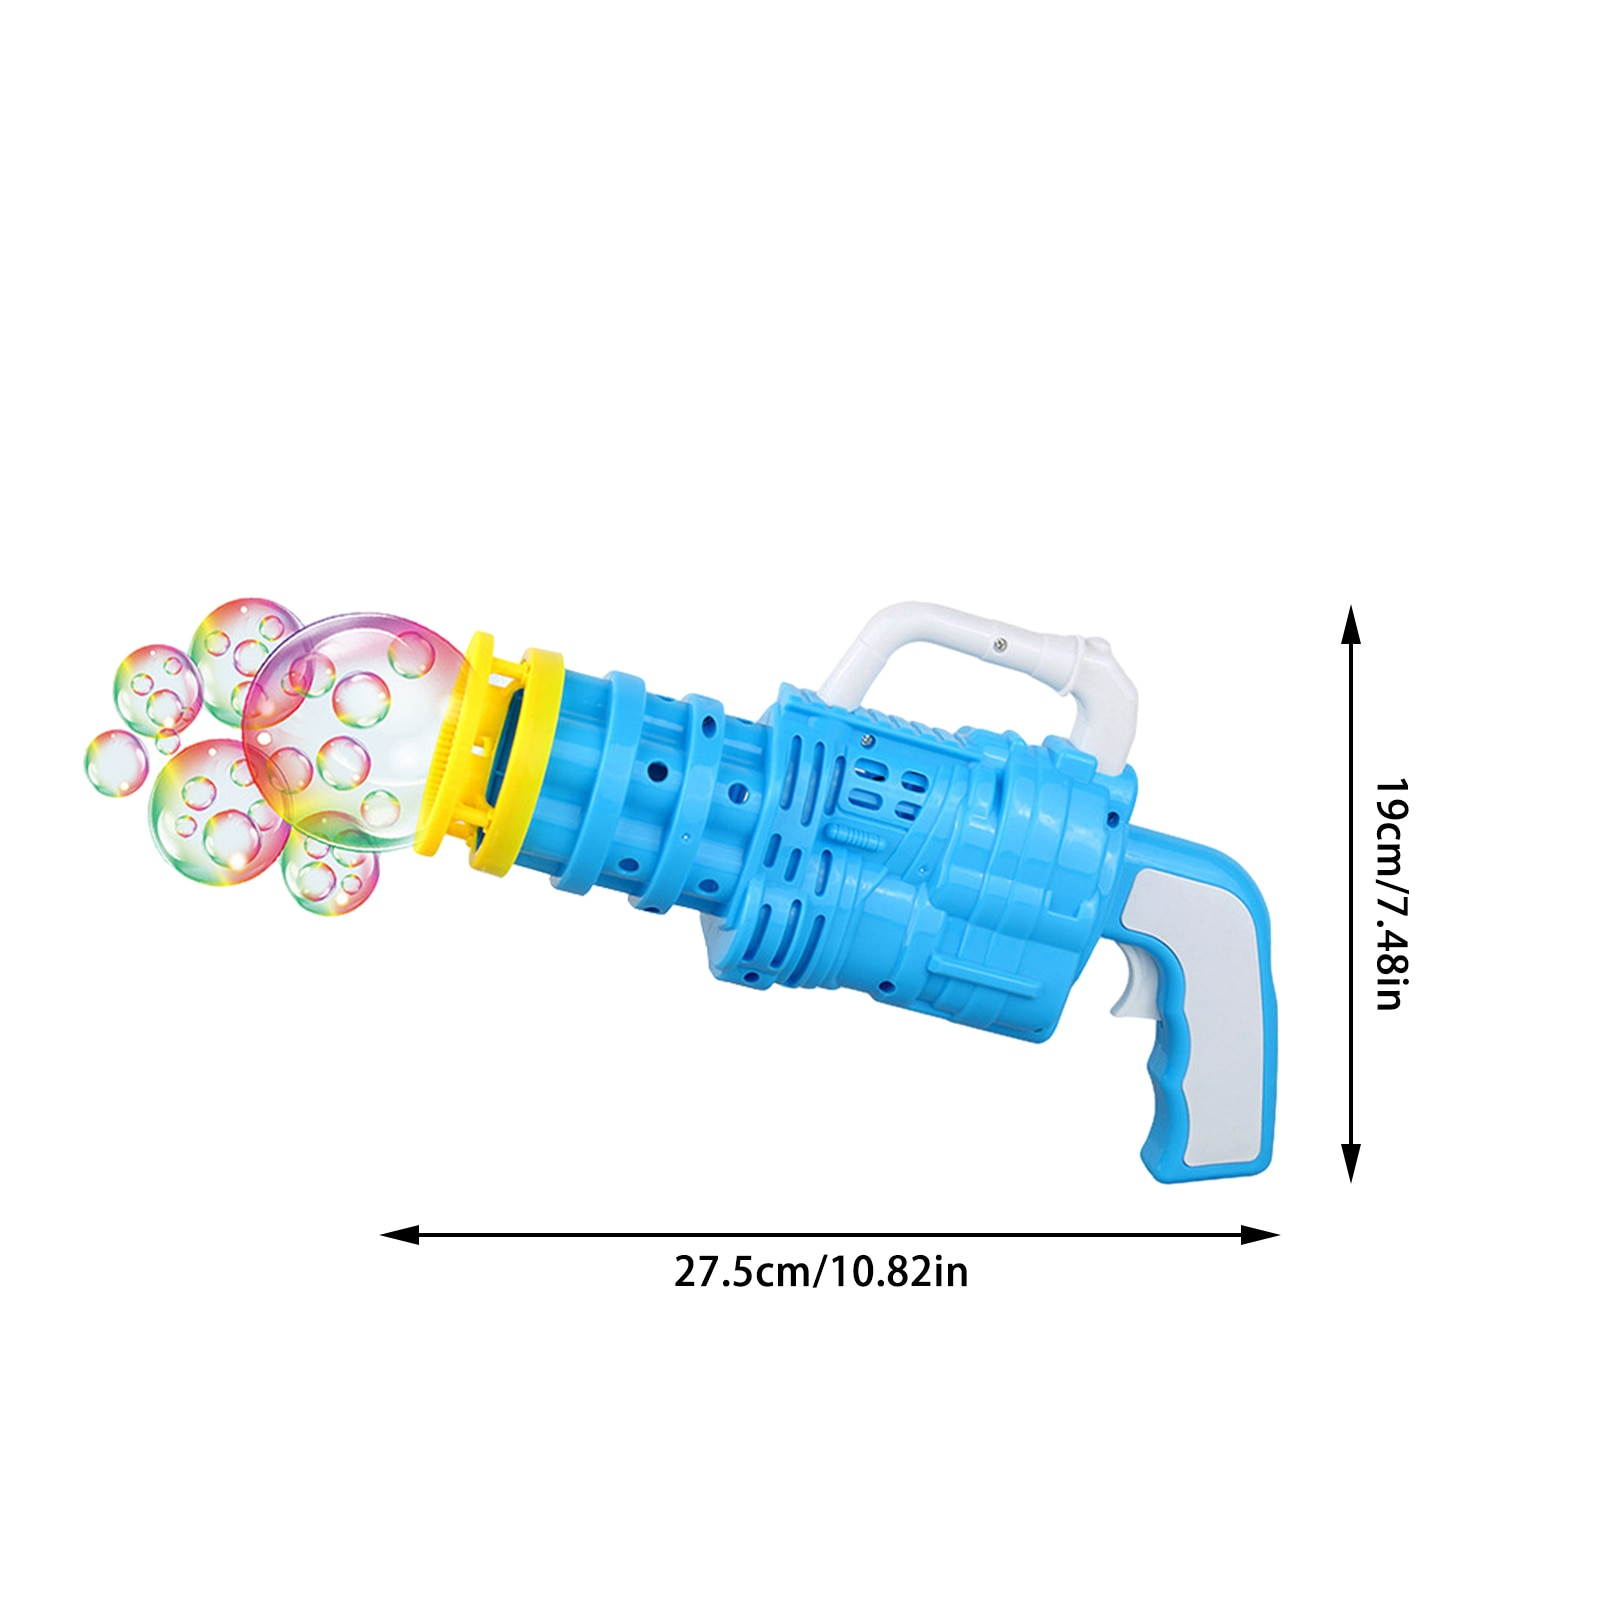 Portable Bubble Machine Bubble Gun Soap ABS Outdoor Frog Bubble Toy Outdoor Interactive For Kids Children  - buy with discount